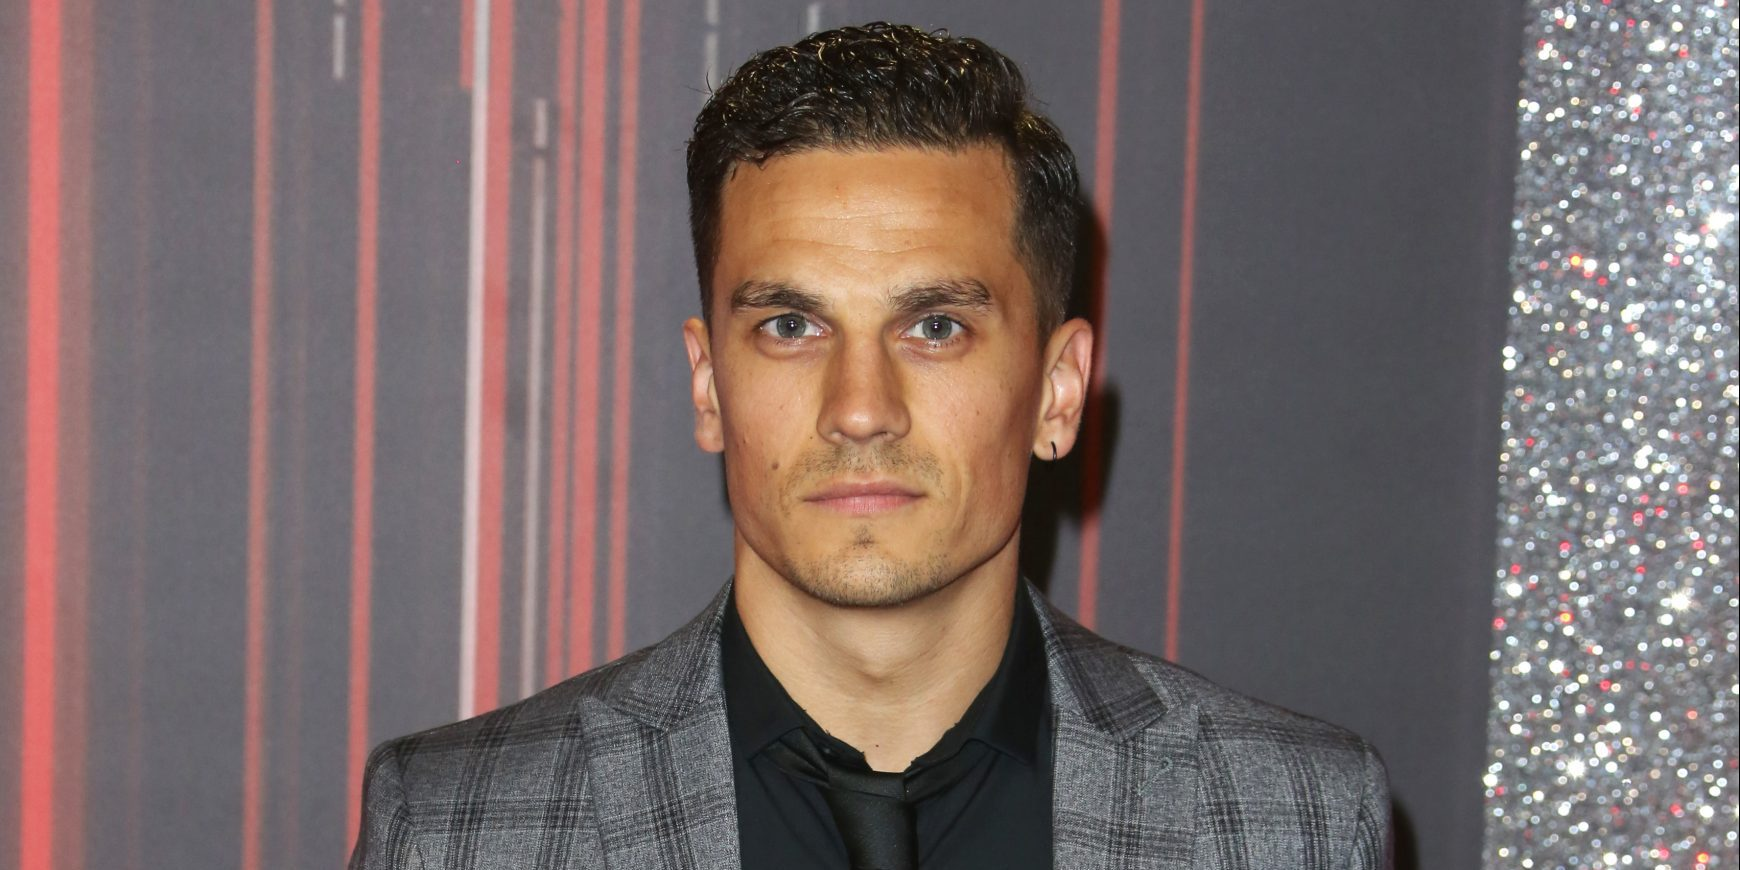 Former EastEnders star Aaron Sidwell warns fans after having a knife pulled on him